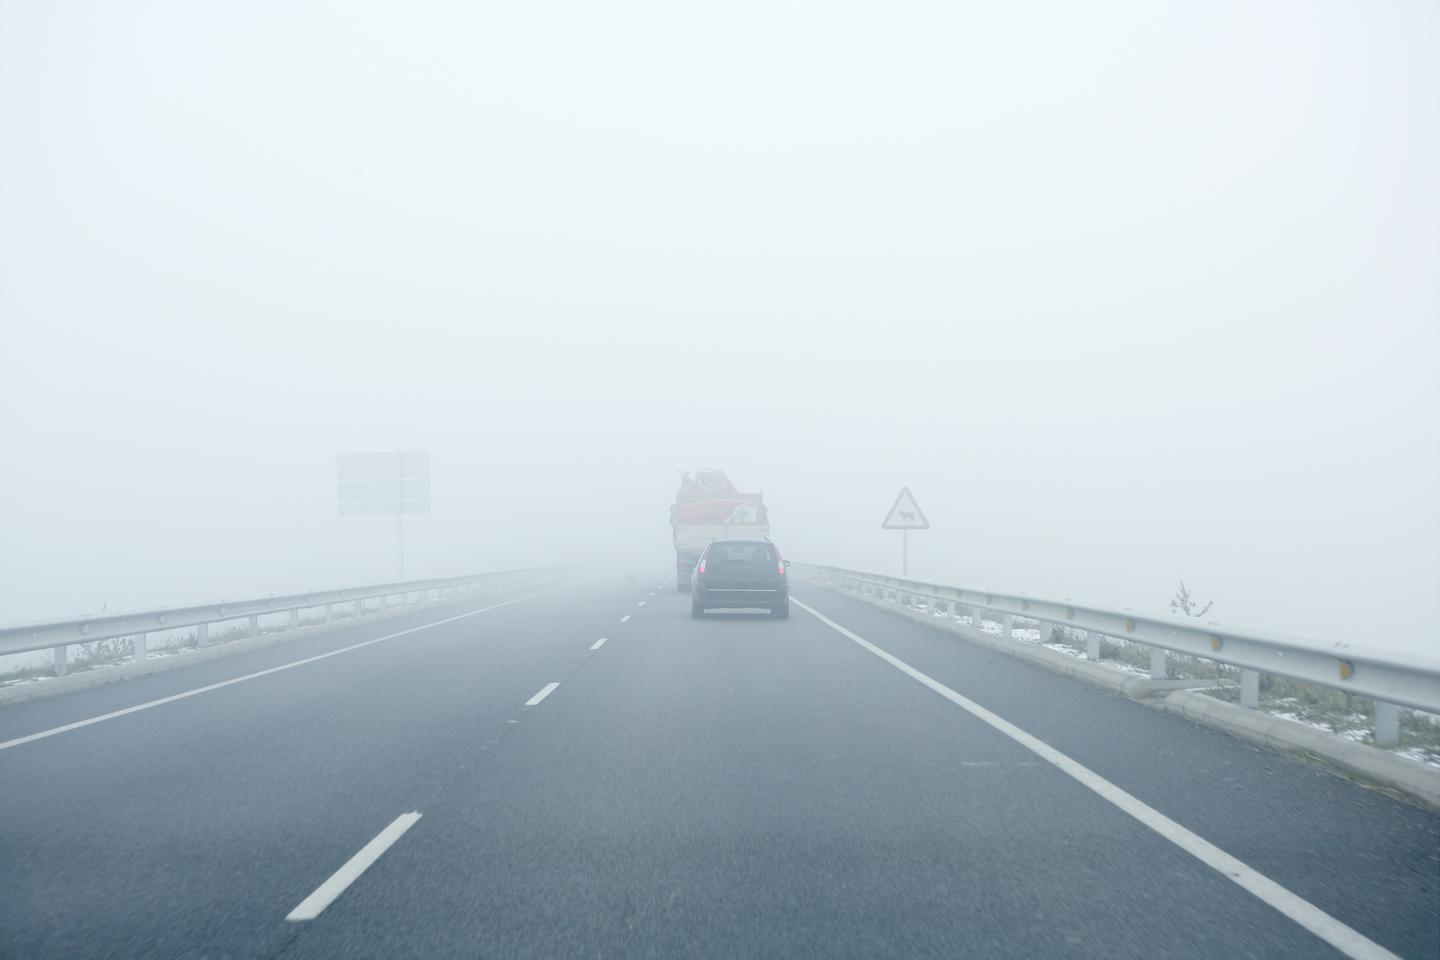 Neither LiDAR nor traditional radar systems are particularly good at imaging vehicles that are hidden on foggy roads